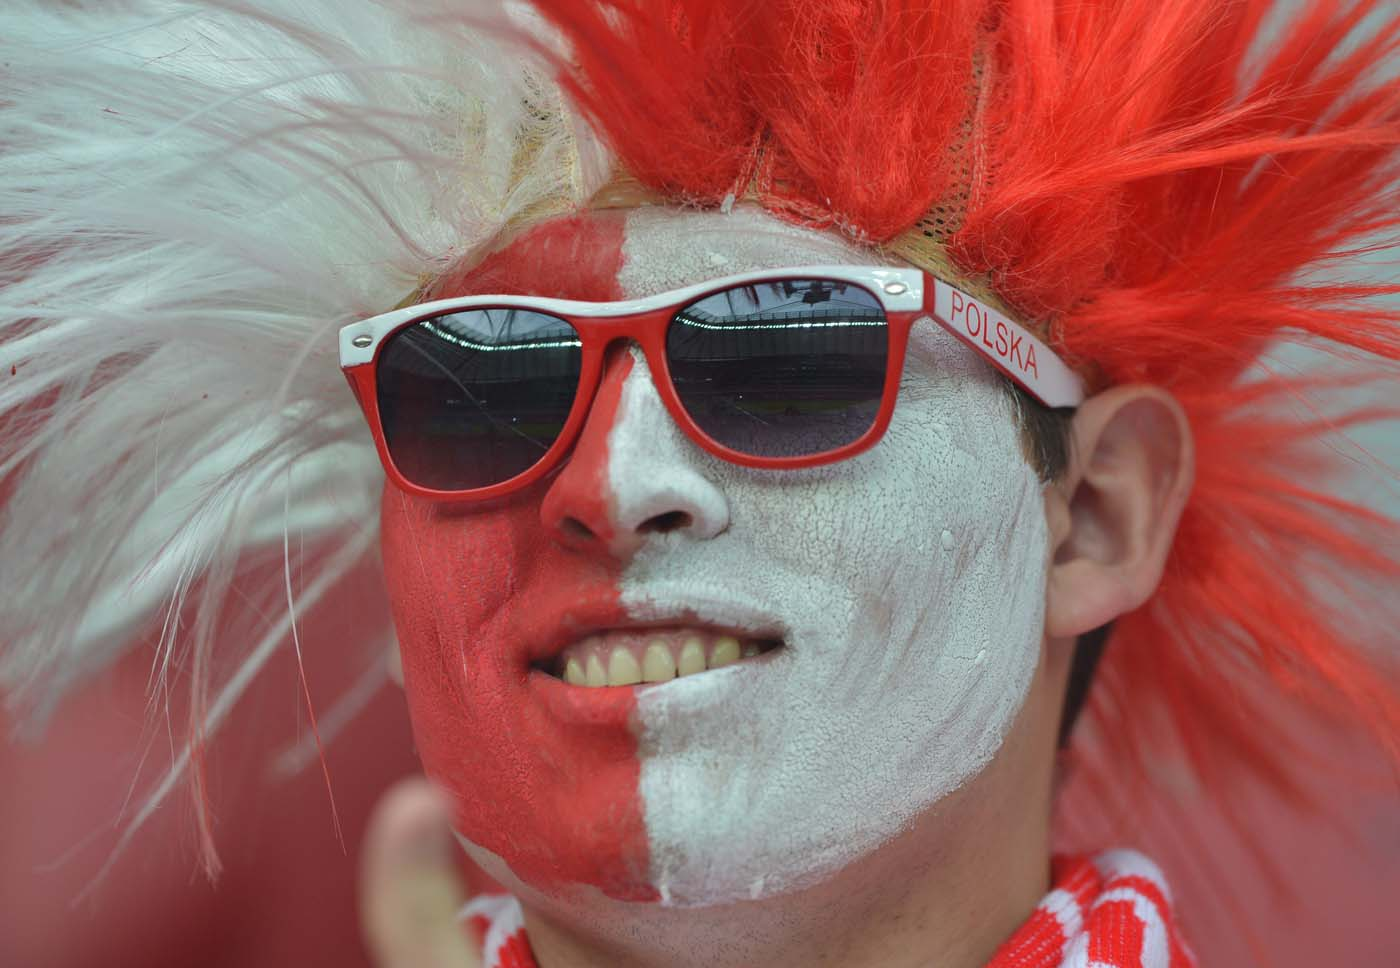 A Polish supporter is pictured prior to the Euro 2012 championships football match Poland vs Russia on June 12, 2012 at the National Stadium in Warsaw. (Gabriel Bouys/AFP/Getty Images)